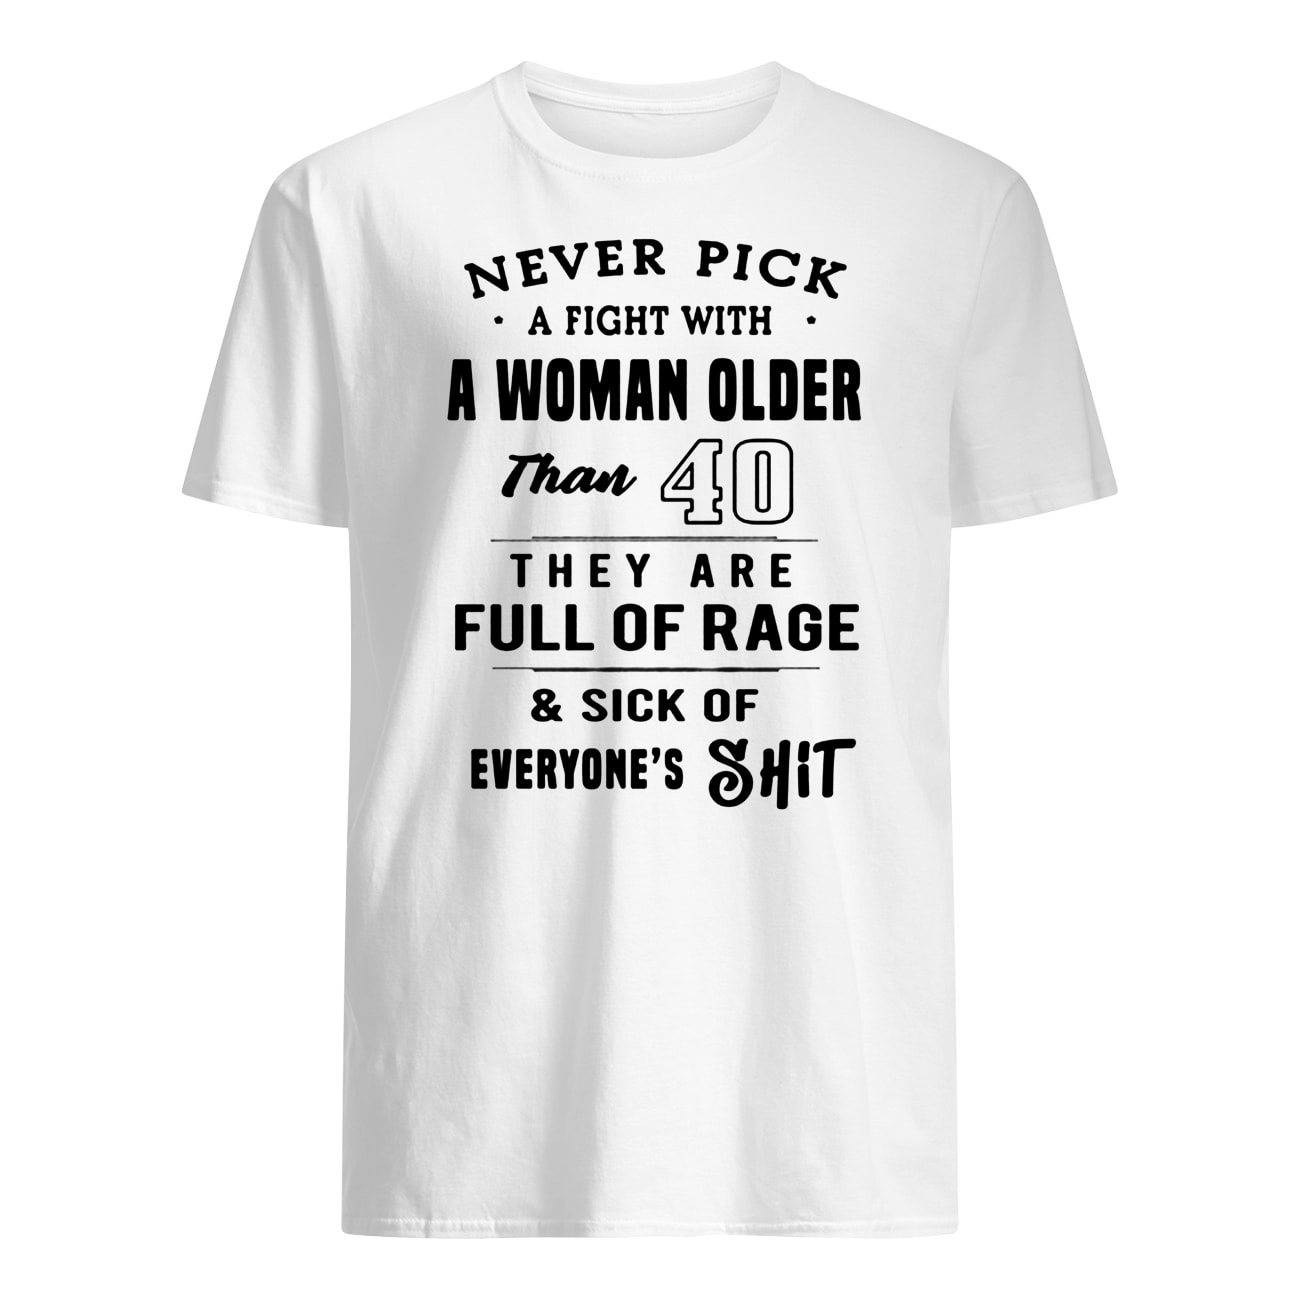 Never pick a fight with a woman older than 40 they are full of rage mens shirt